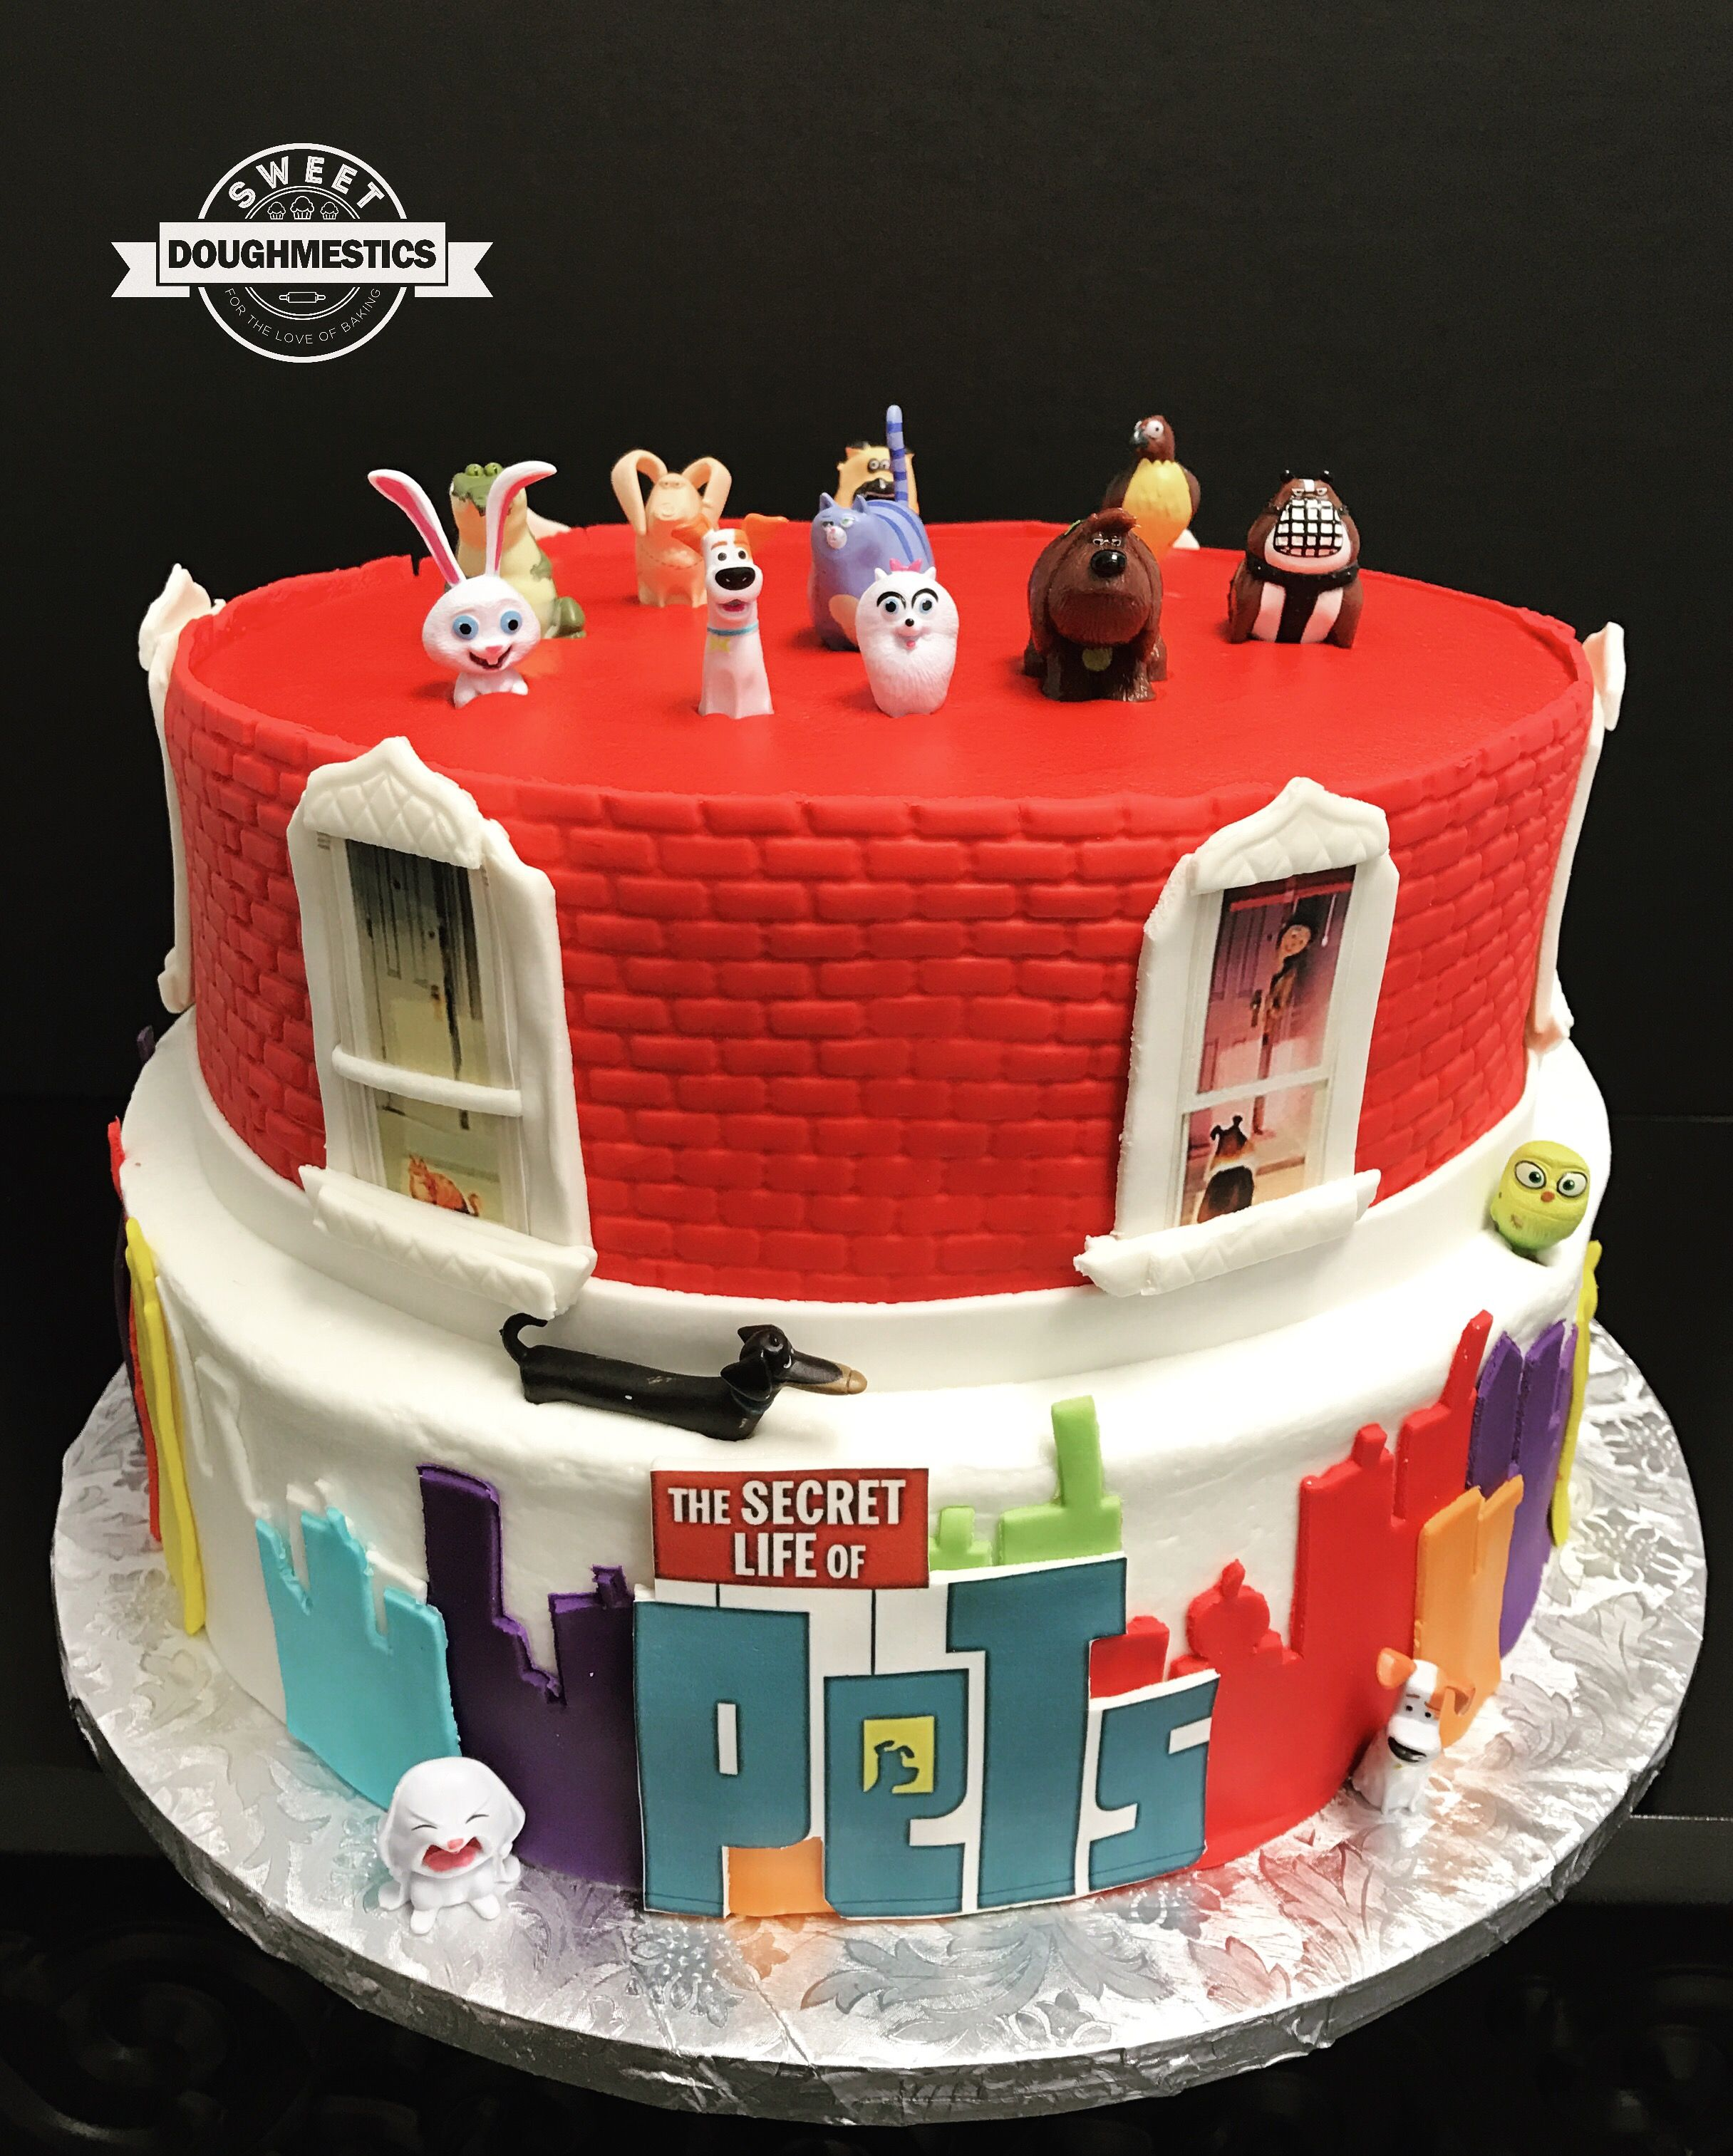 The Secret Life Of Pets Cake By Sweet Doughmestics Birthday